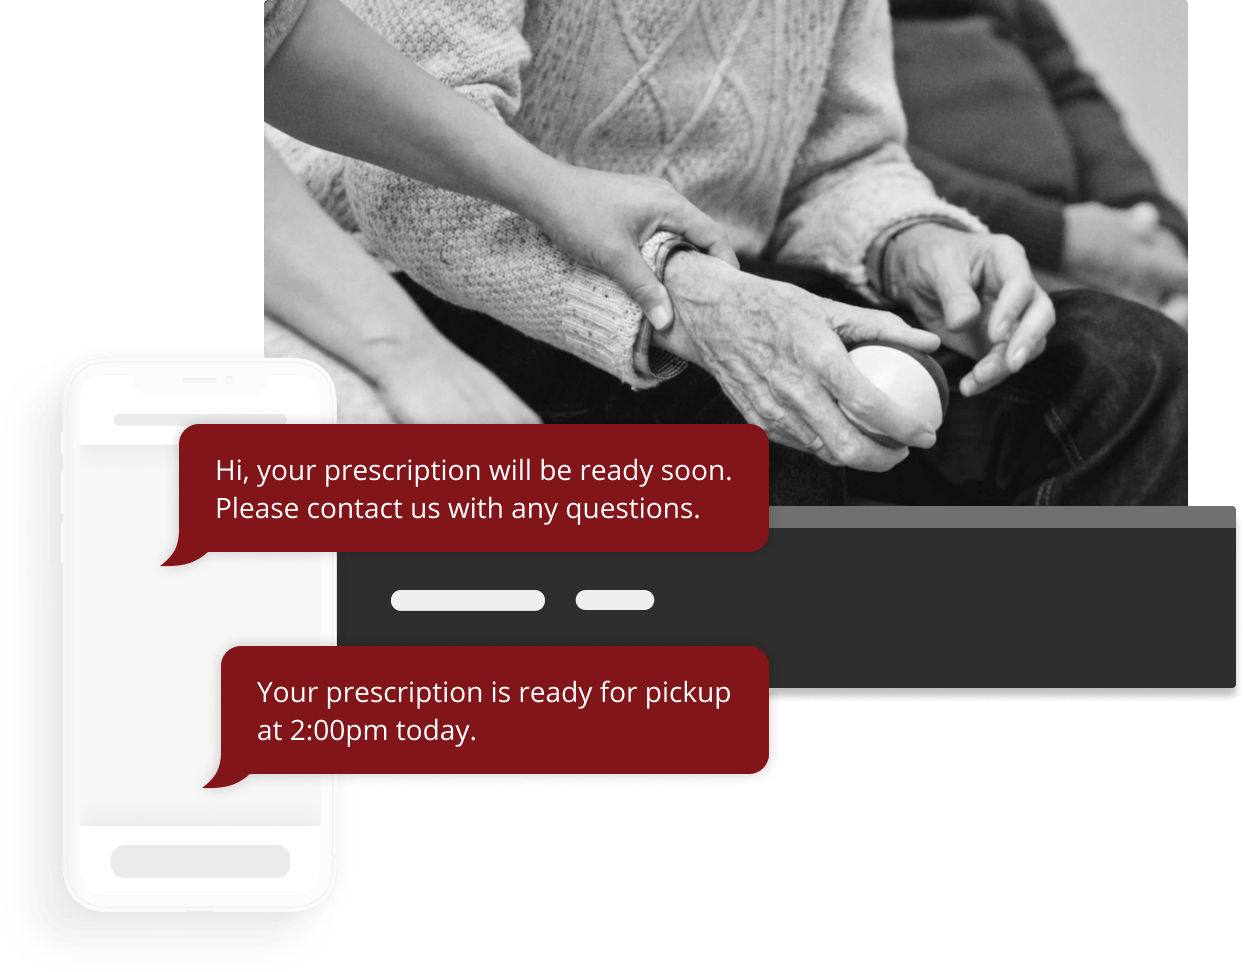 SMS Messaging Software in use in the Healthcare industry.